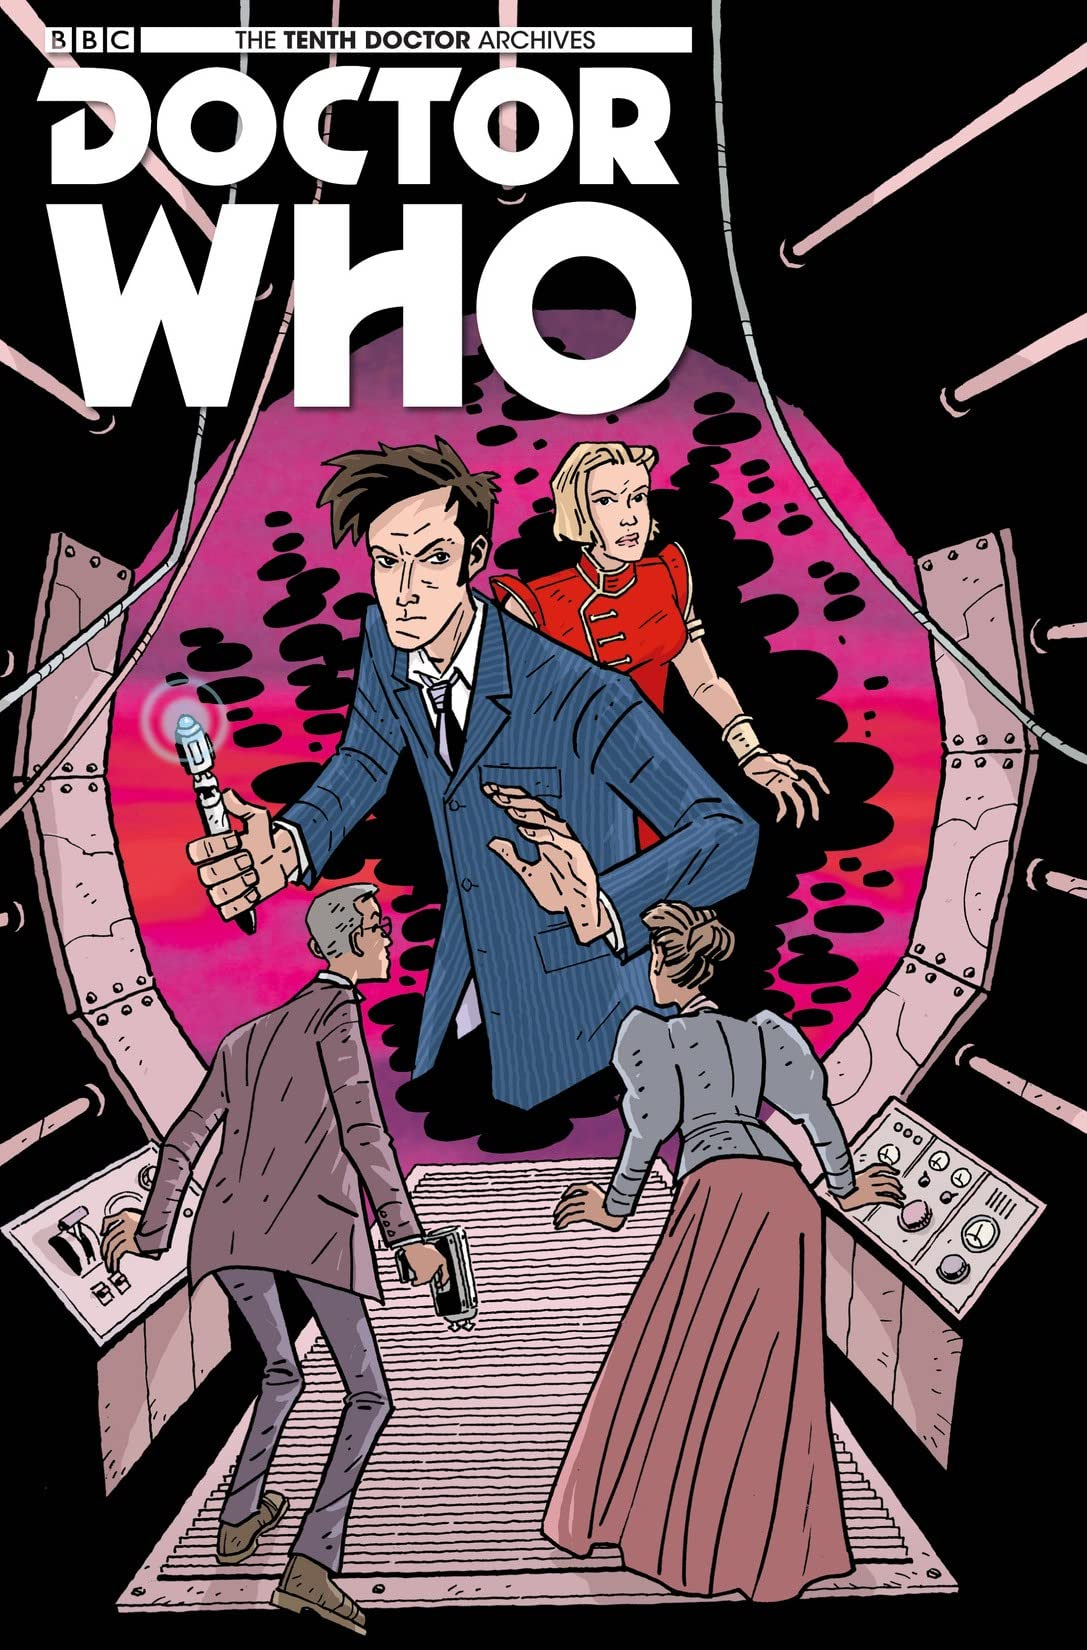 Doctor Who: The Tenth Doctor Archives #31